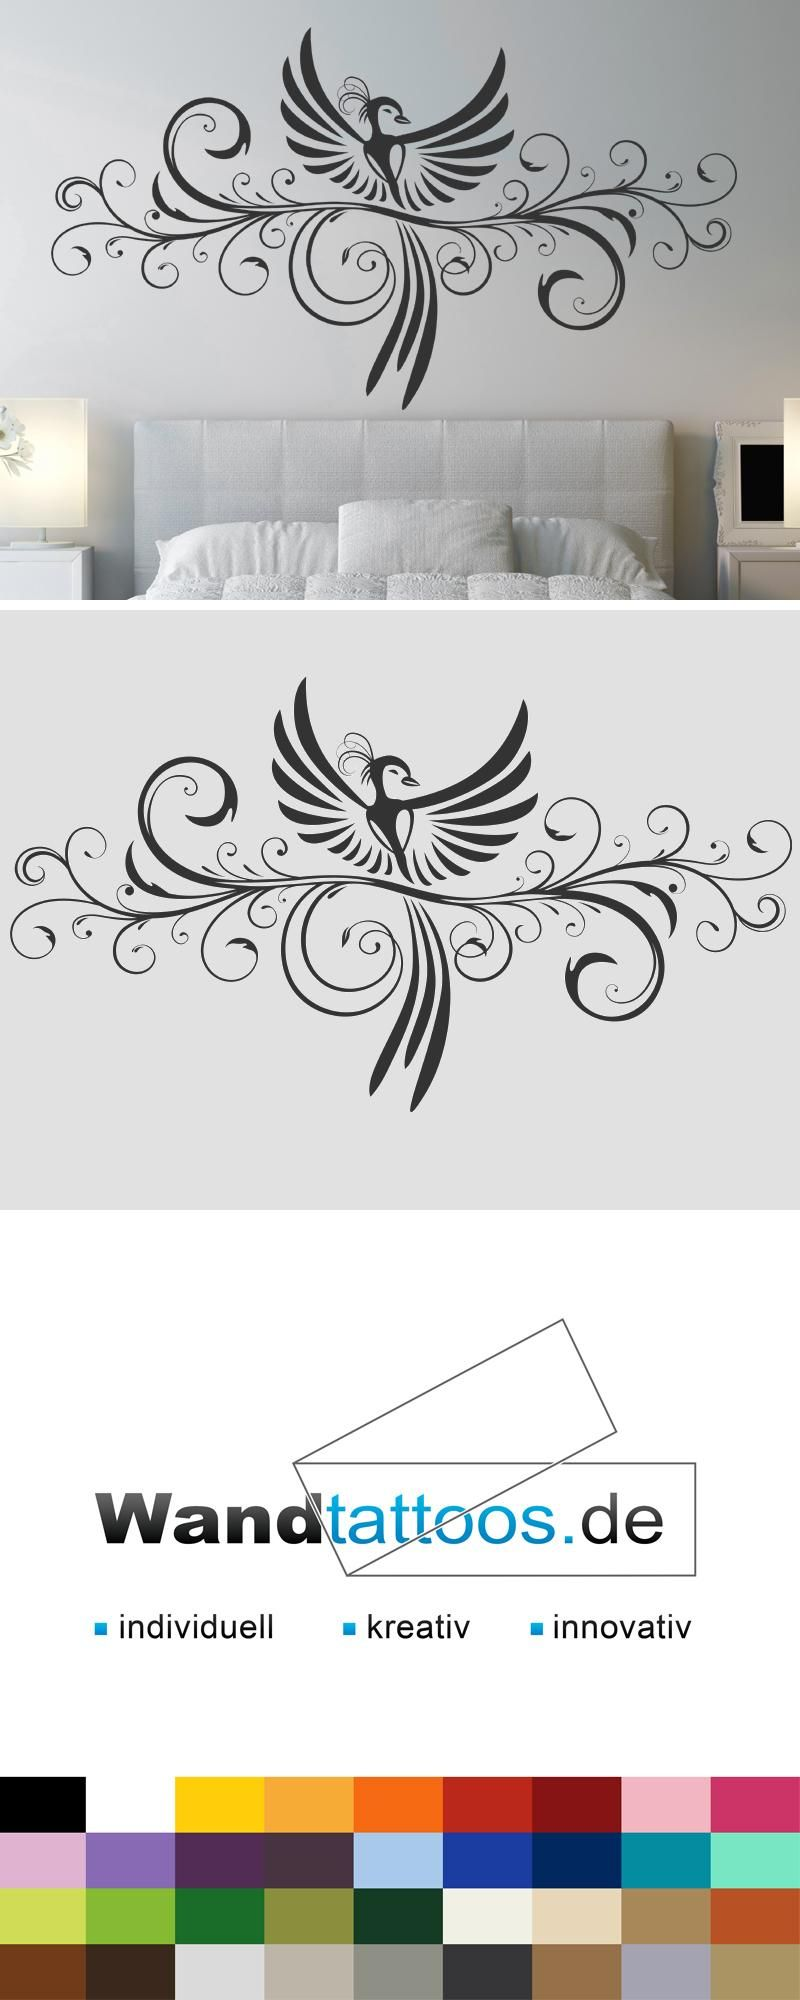 wandtattoo dekoratives ornament mit ph nix ornamente wandtattoos pinterest wandtattoo. Black Bedroom Furniture Sets. Home Design Ideas